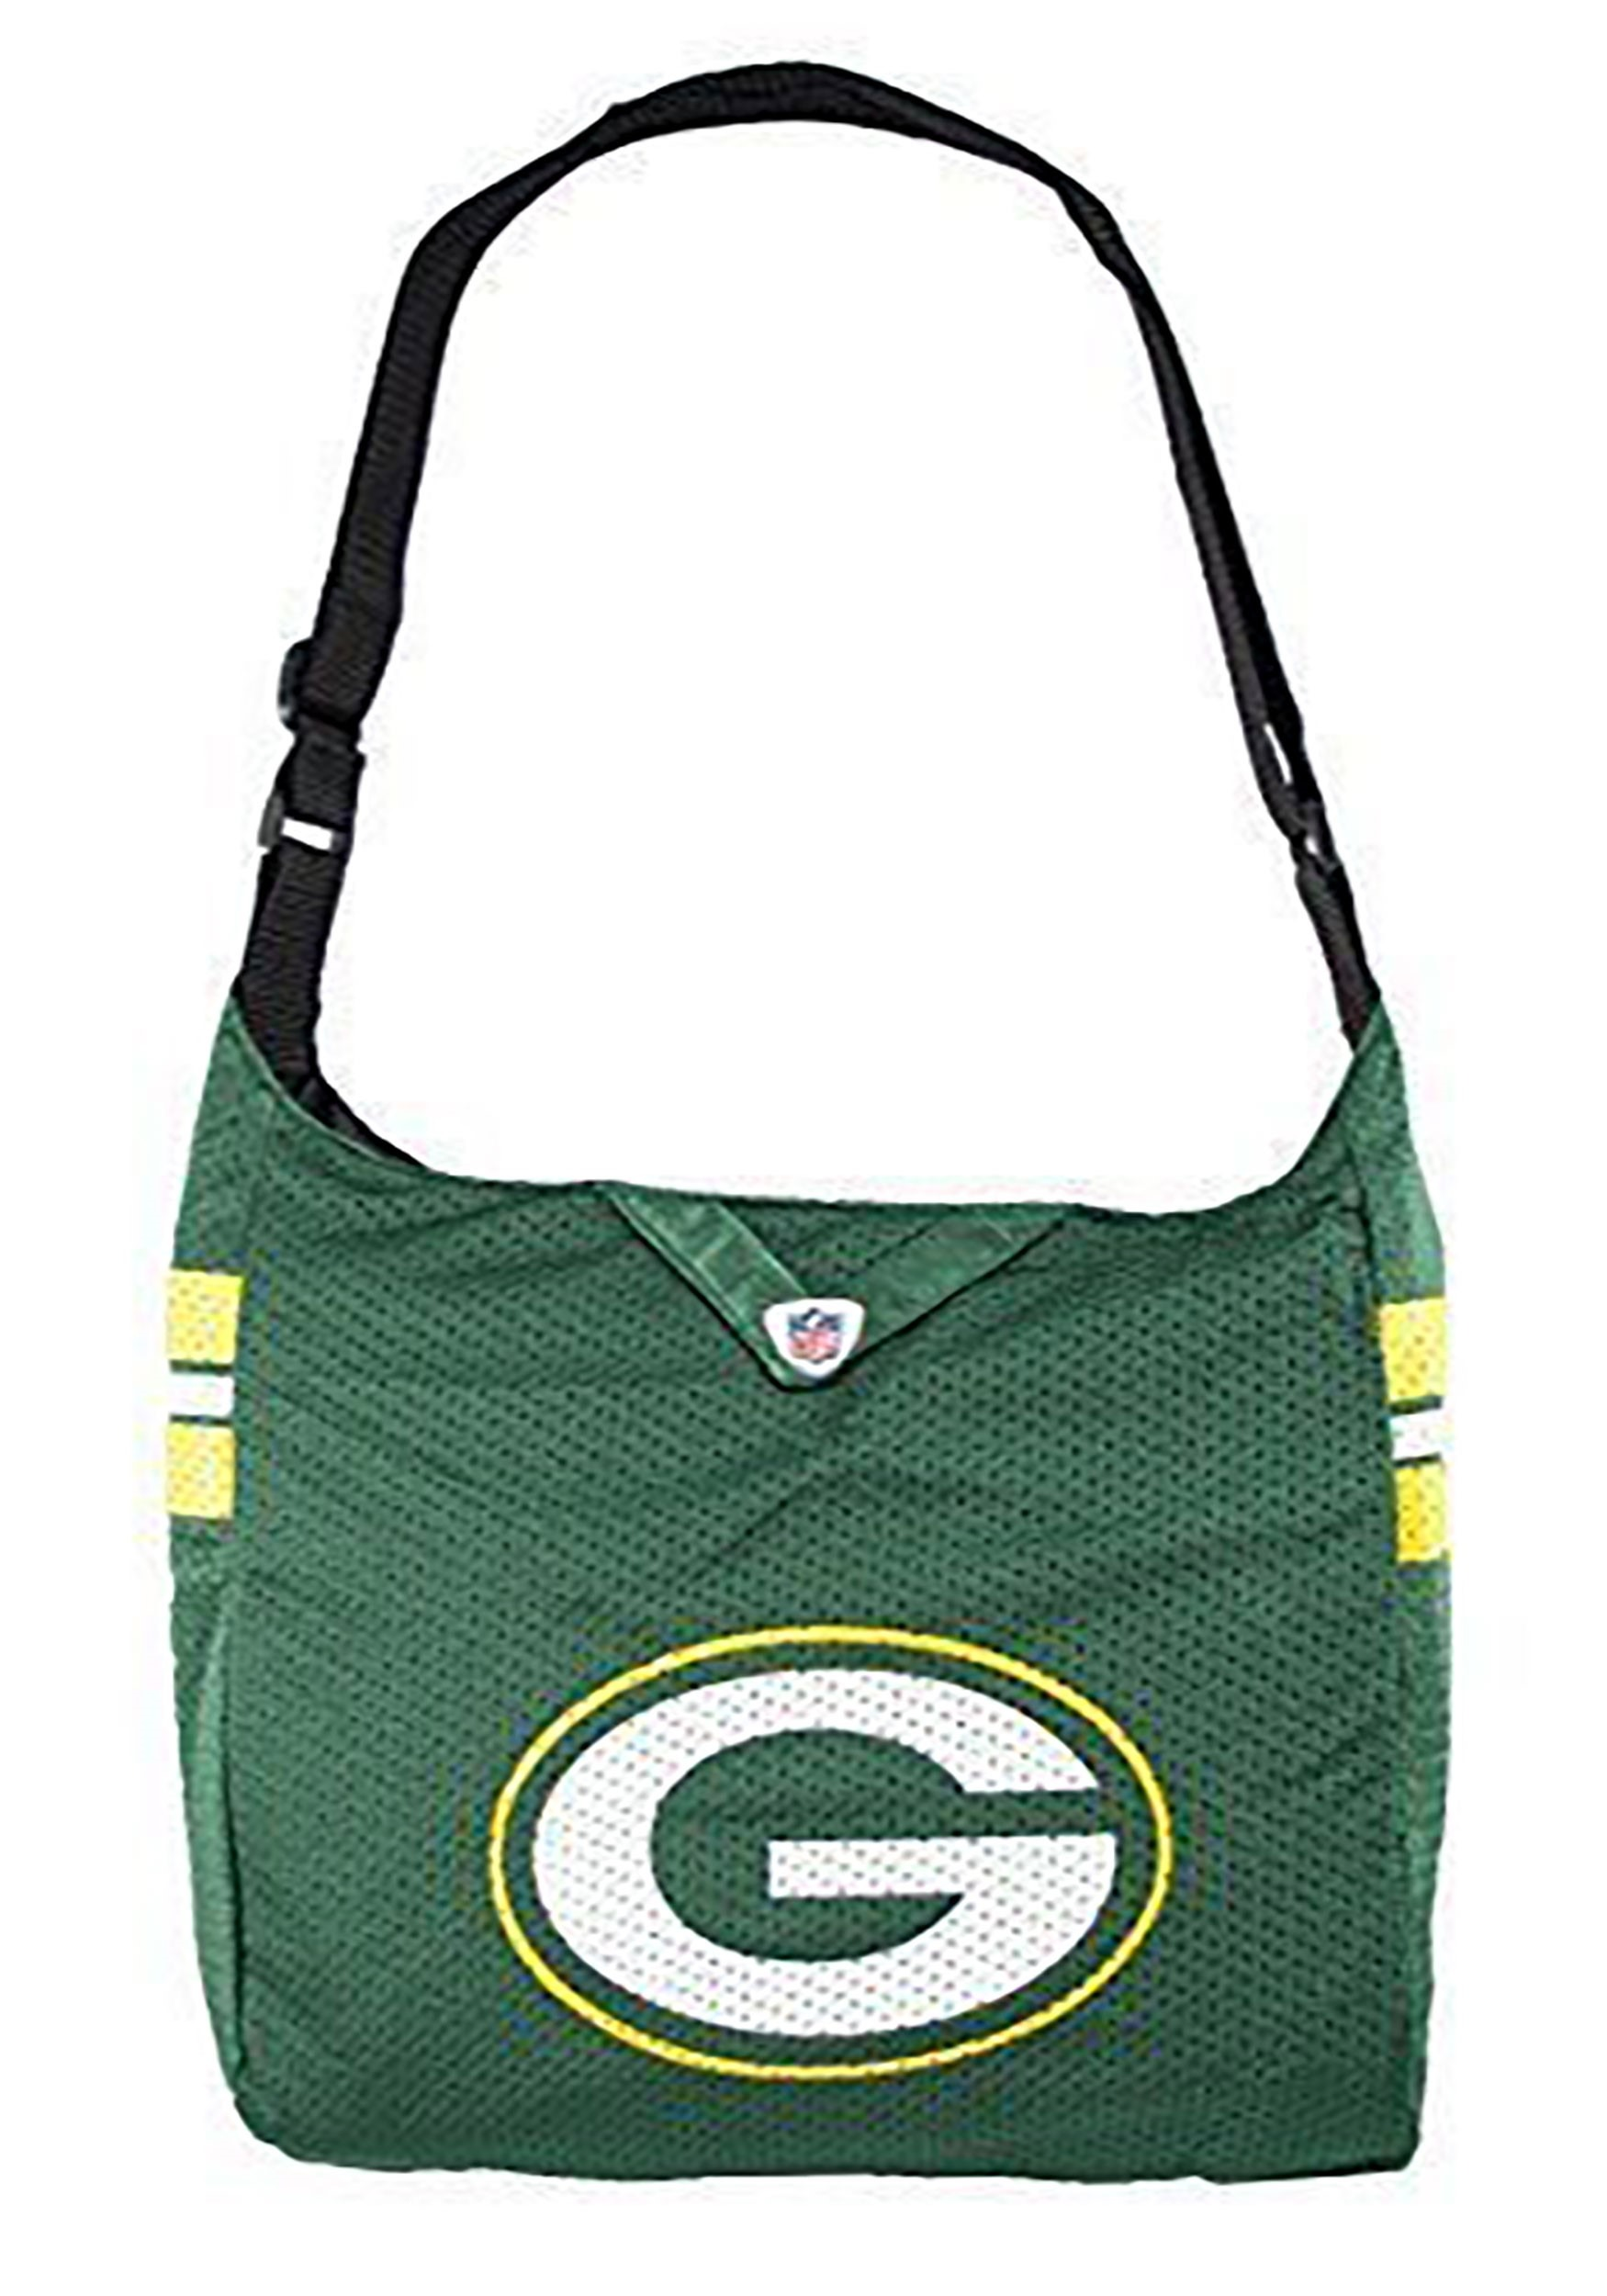 official photos f0175 c1586 NFL Green Bay Packers Team Jersey Tote Bag